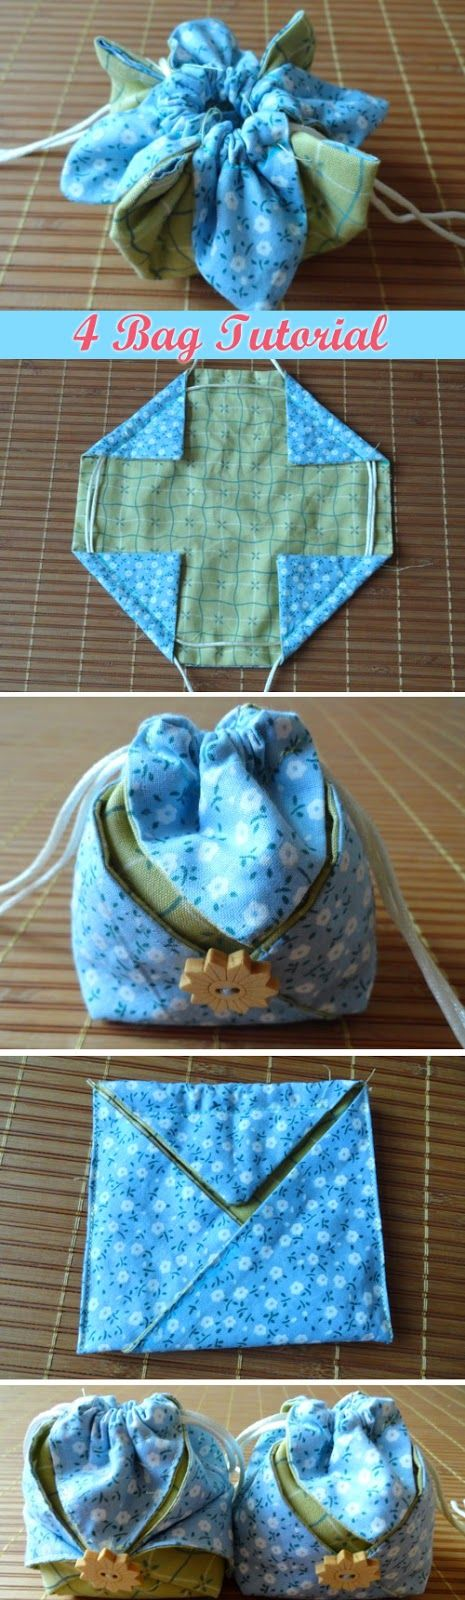 Gift Drawstring Bags, Little Pouches. 4 Sewing Variant Photo Tutorial. http://www.handmadiya.com/2016/02/omiyage-gift-pouch-4-tutorial.html